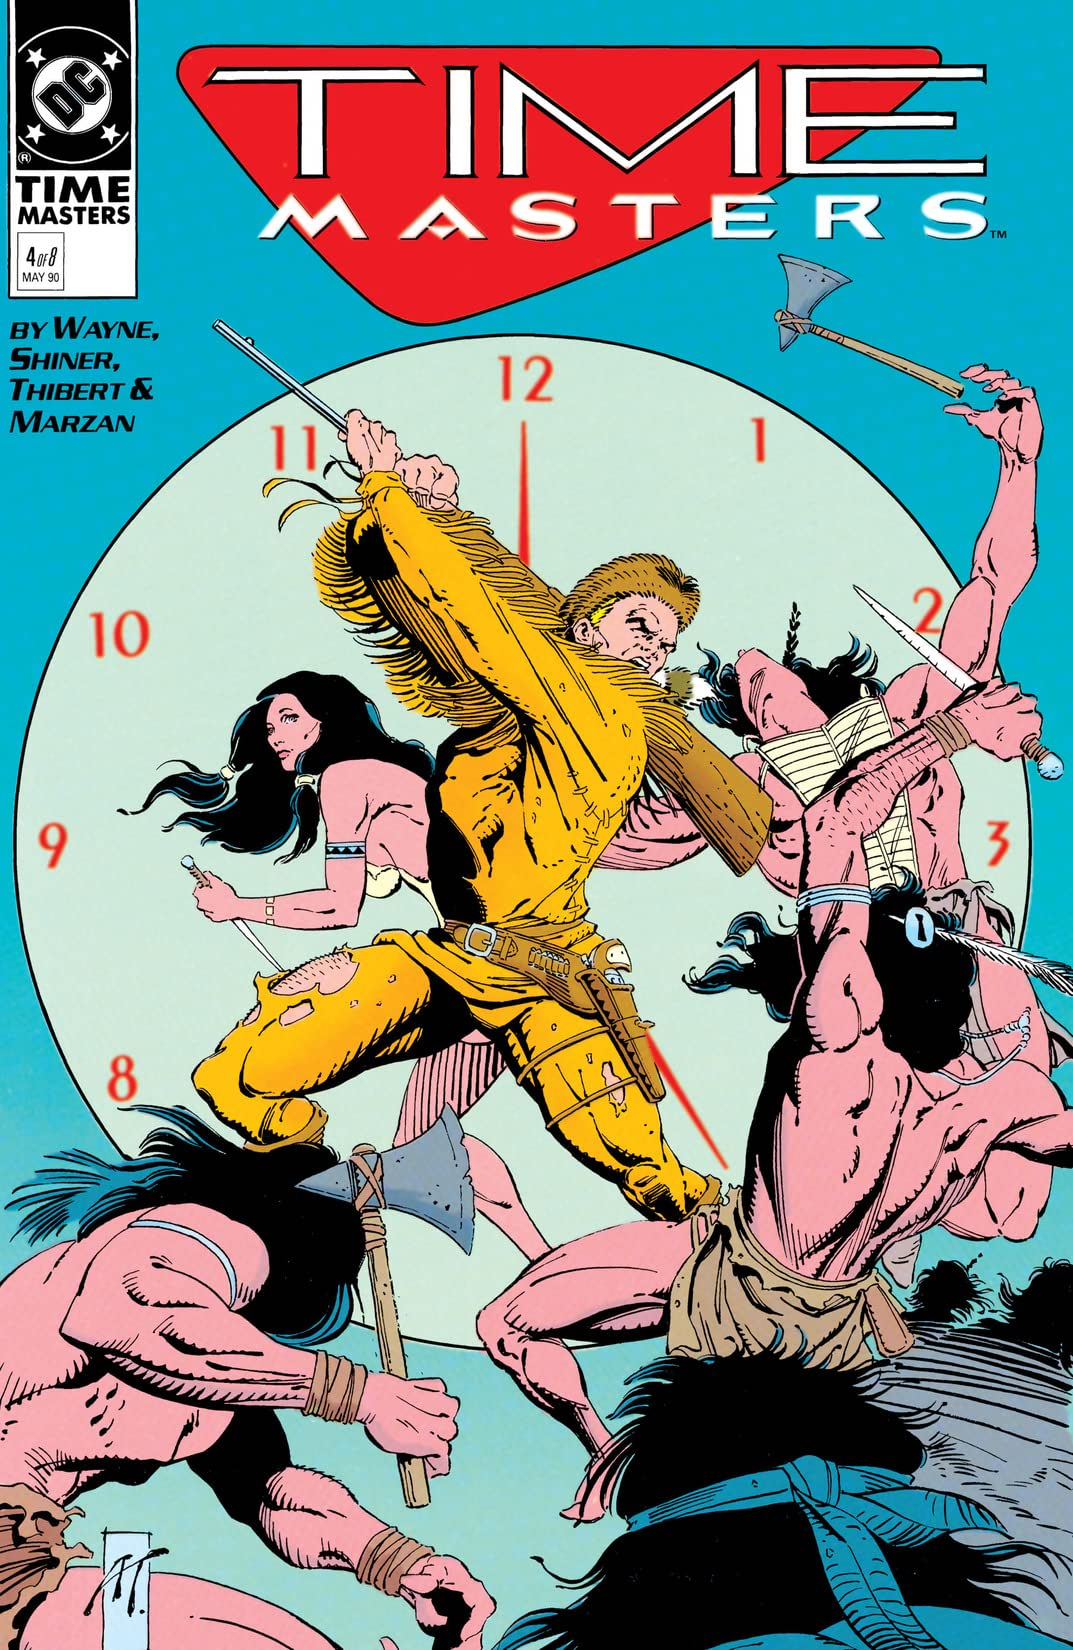 Time Masters (1990) #4